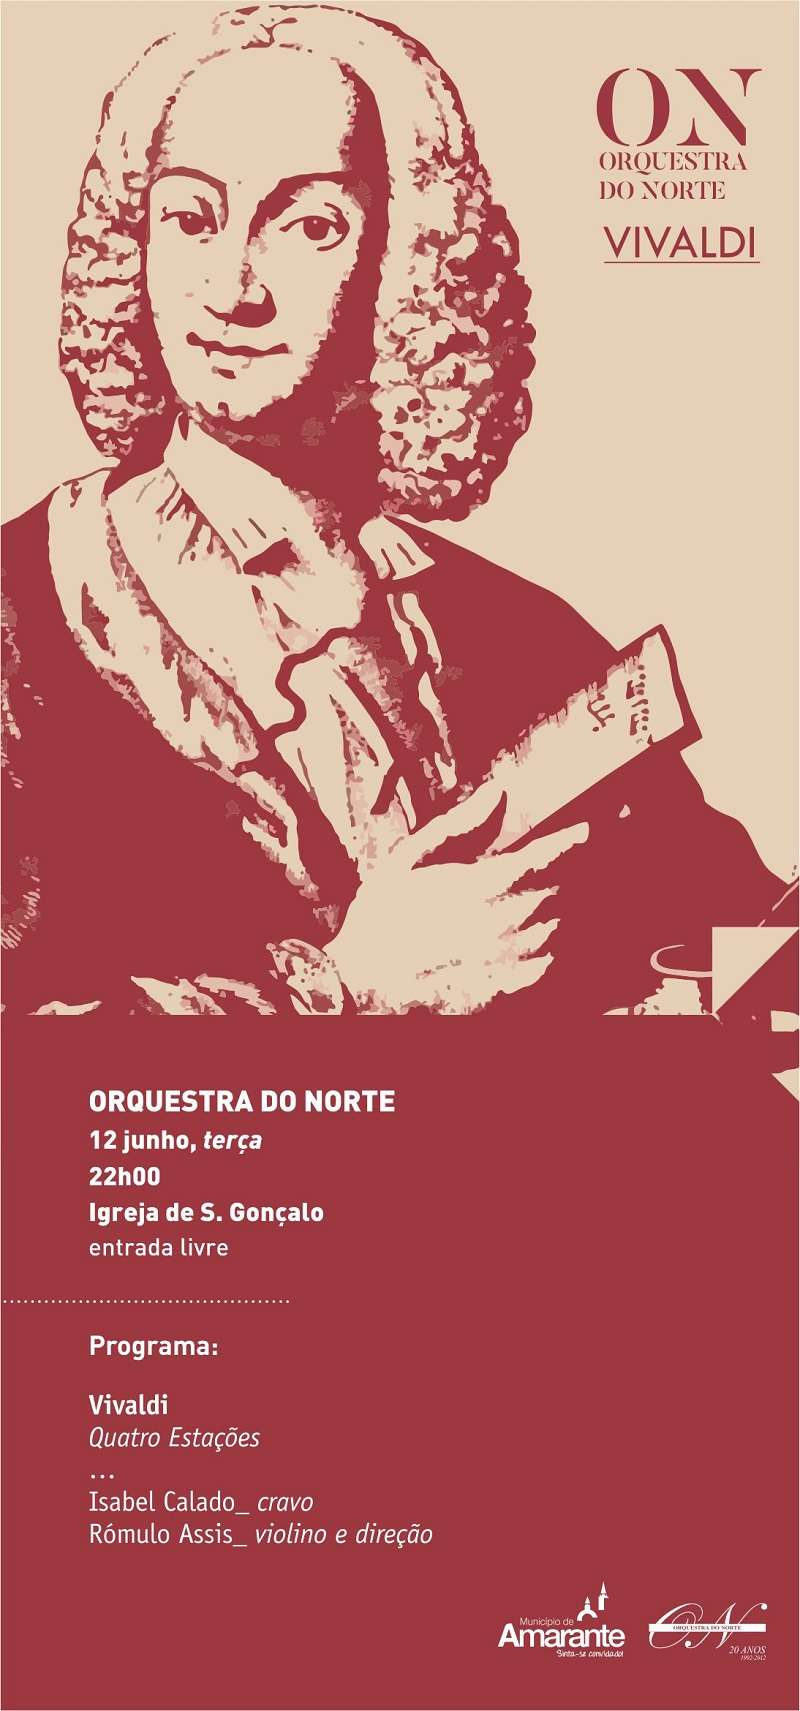 Orquestra do Norte em concerto